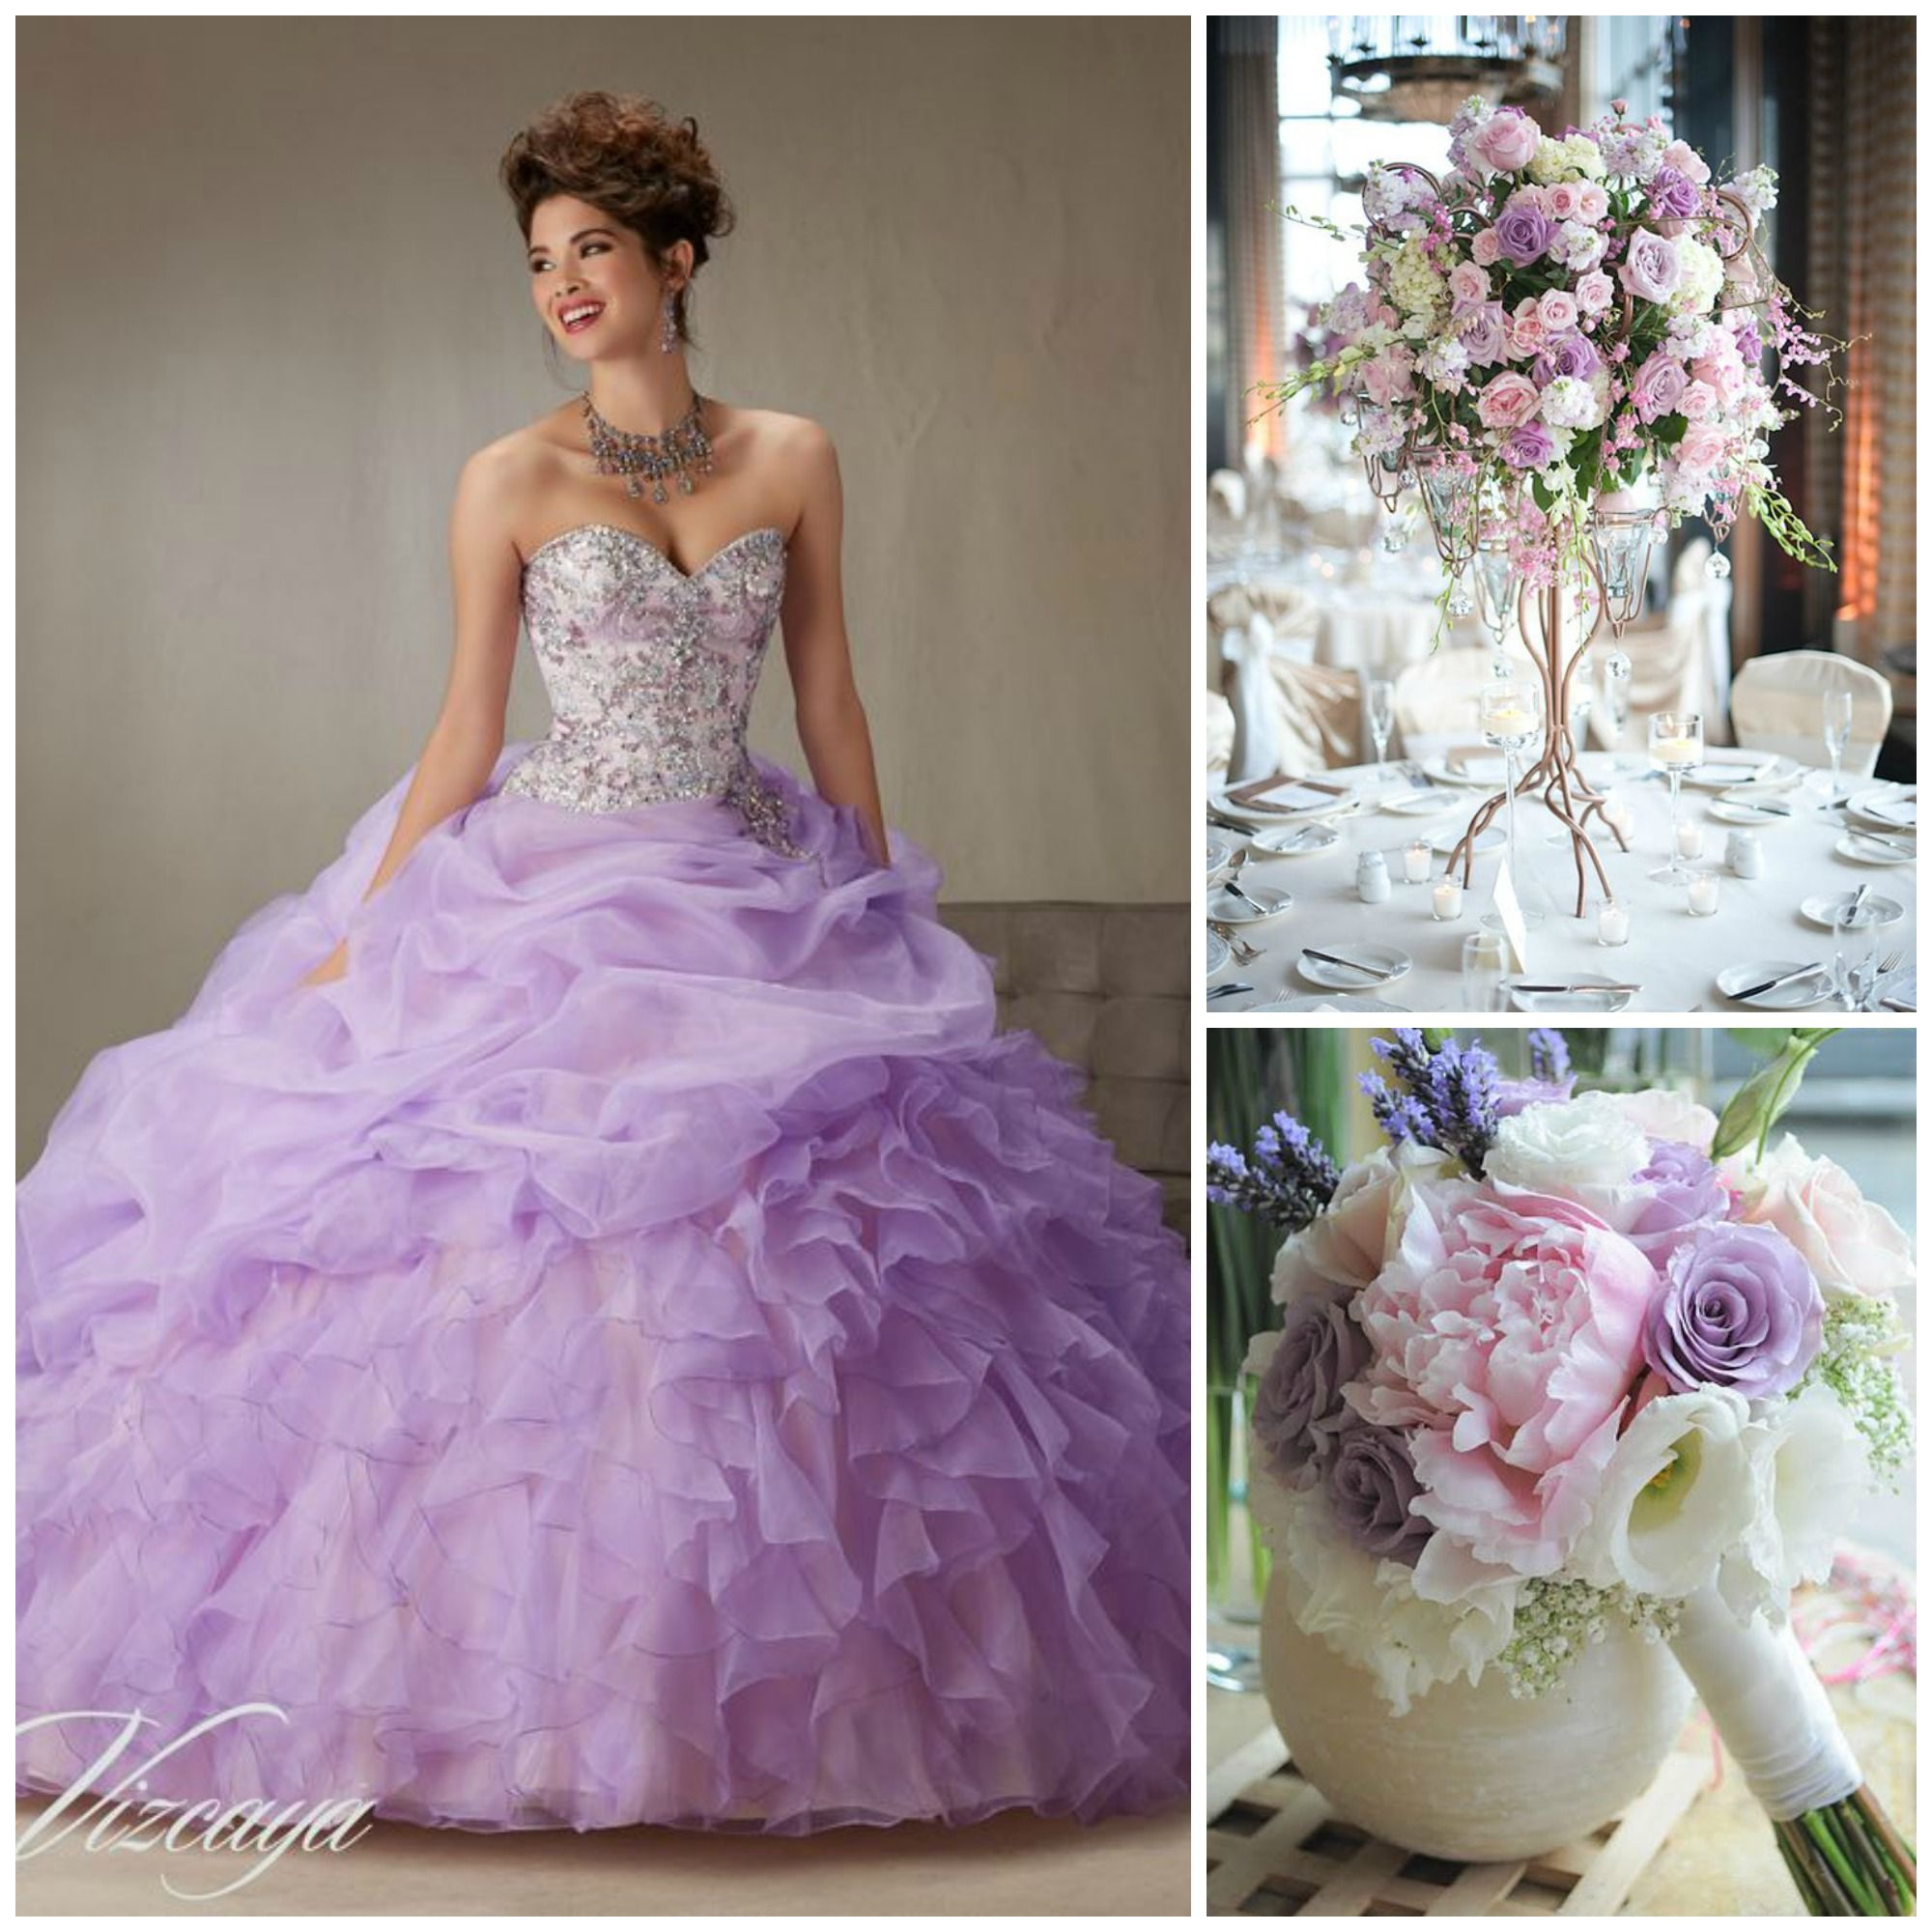 8 Pink Color Combinations That Look Amazing | Pink color ...